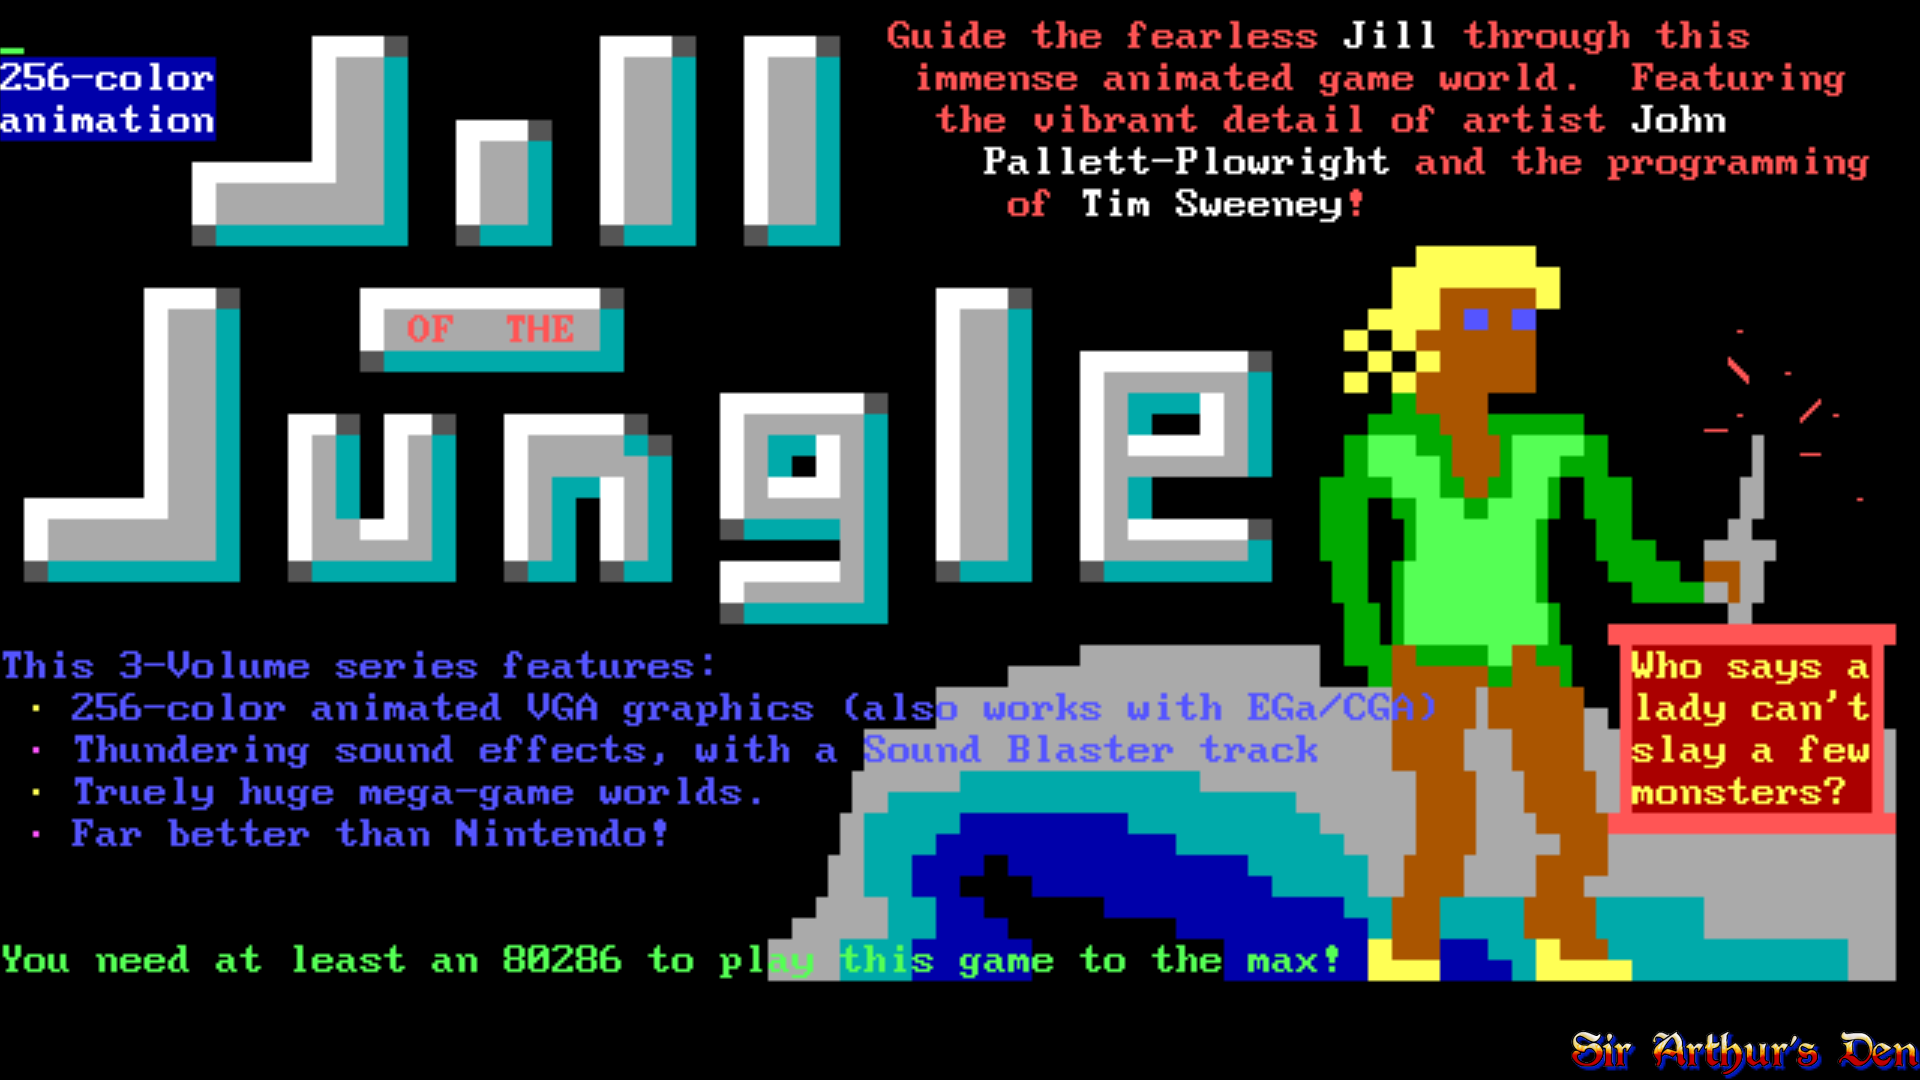 Jill of the Jungle: The Complete Trilogy available for free